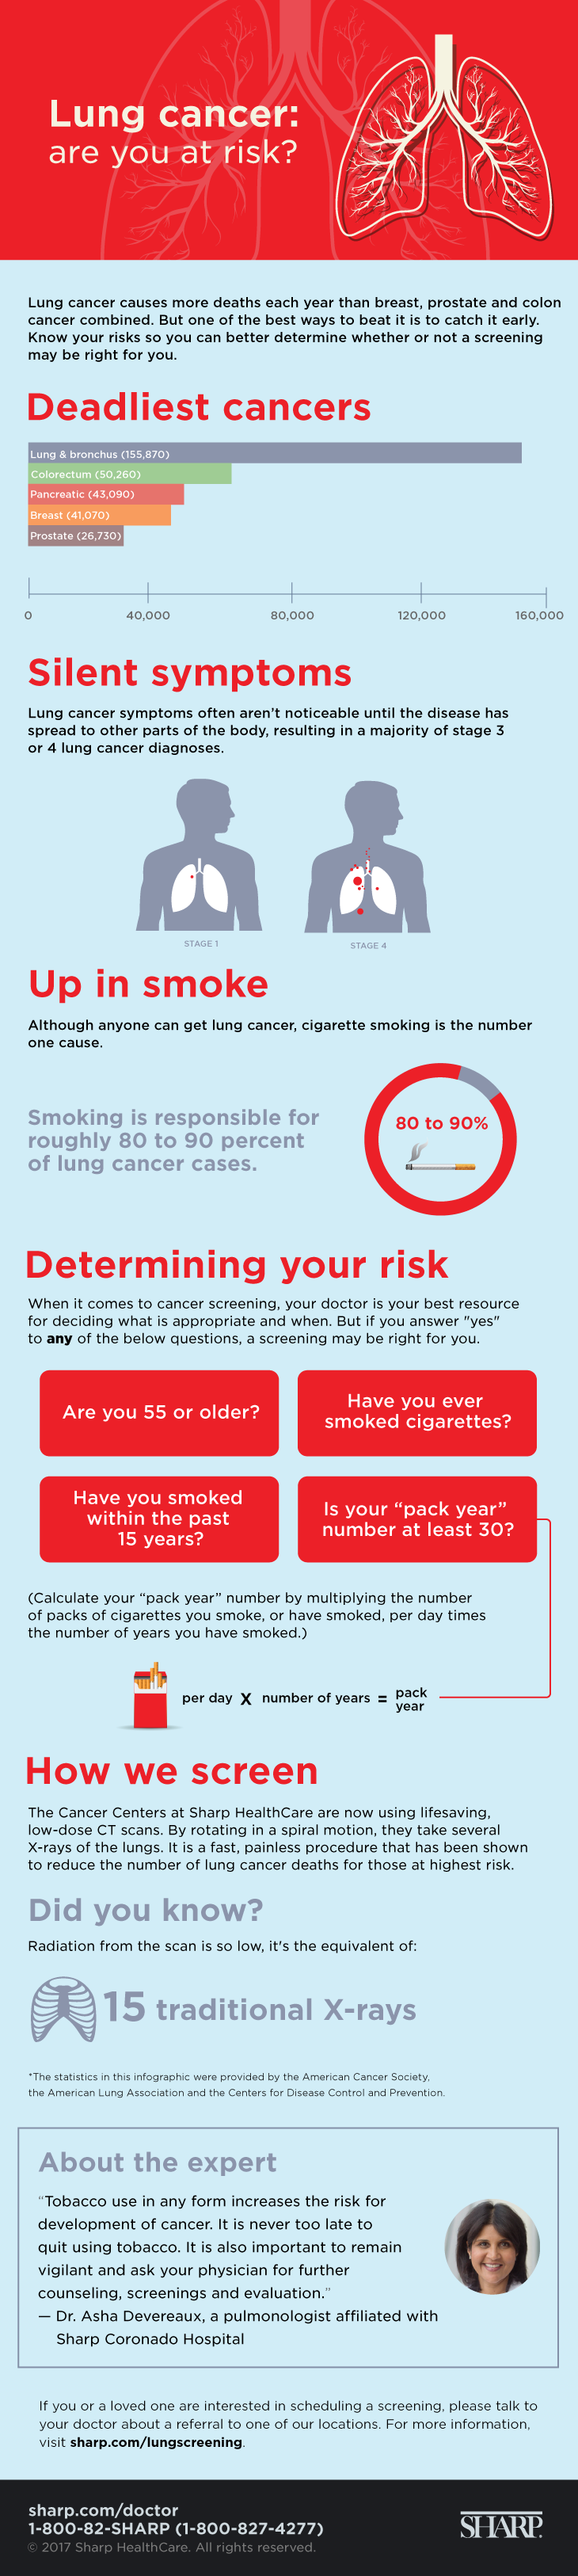 Lung cancer infographic 2017